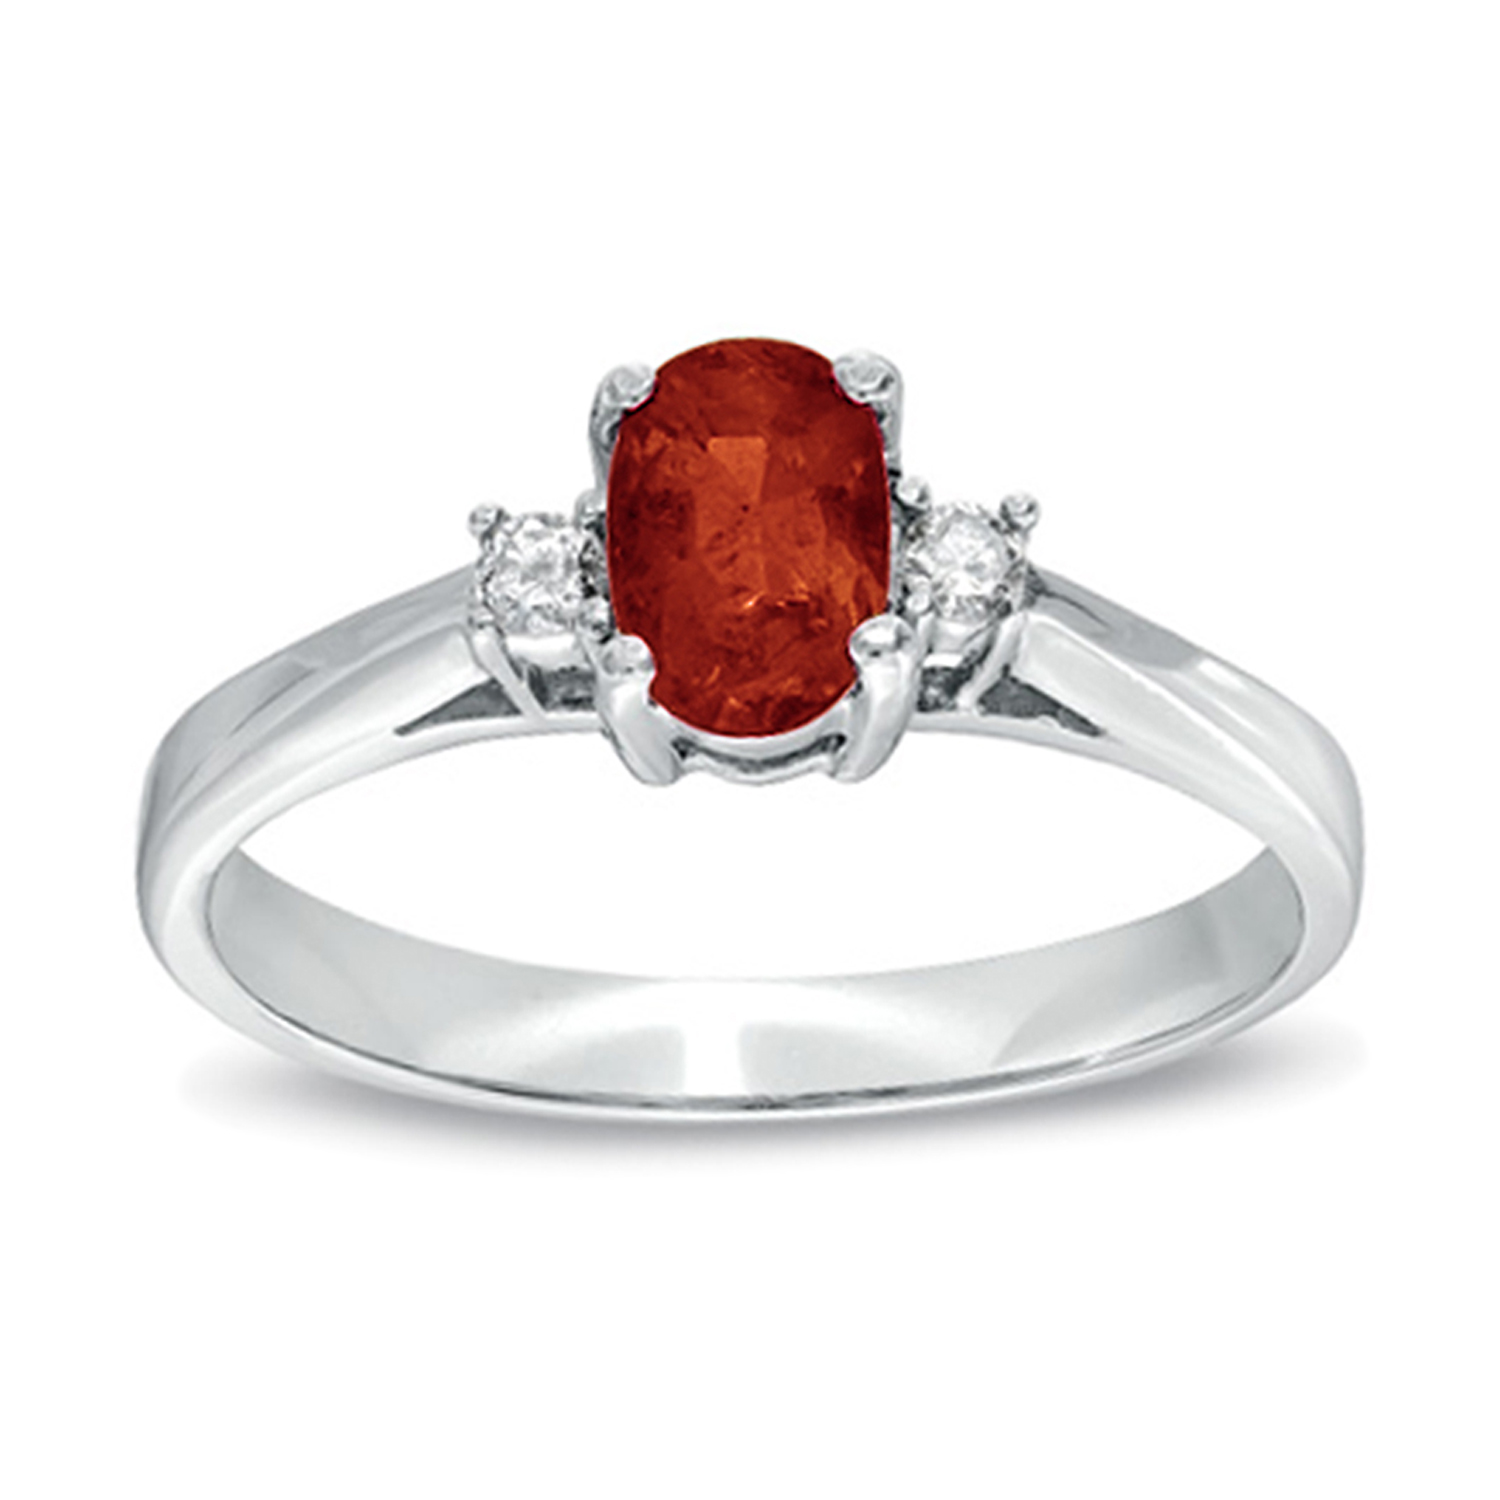 0.55cttw Natural Heated Ruby and Diamond Ring set in 14k Gold